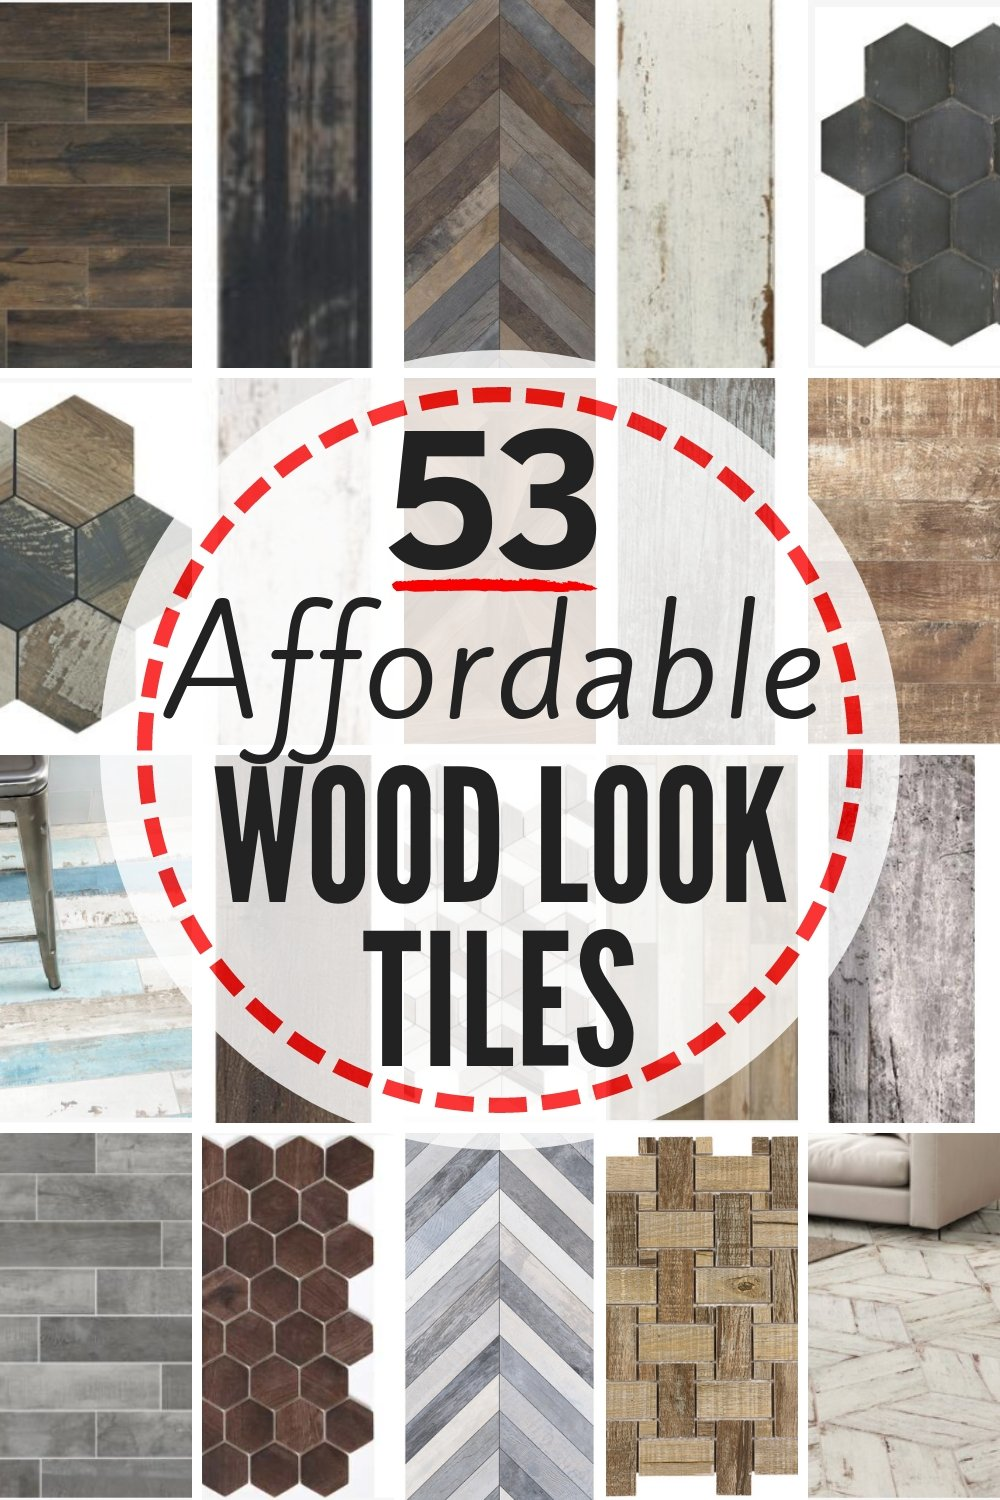 53 affordable and gorgeous faux wood tile options. Plus, how to know if porcelain or ceramic wood grain tile is the right type of flooring or tile for you in your own home. Full review/all you need to know about wood look tile in one spot. #woodtile #woodlooktile #fauxwoodtile #porcelainorceramictile #tilereview #flooring #tile #tilefloor #tileshowerideas #bathroomtile #woodlooktilefloor #porcelainwoodtile #ceramicwoodtile #woodtileflooring